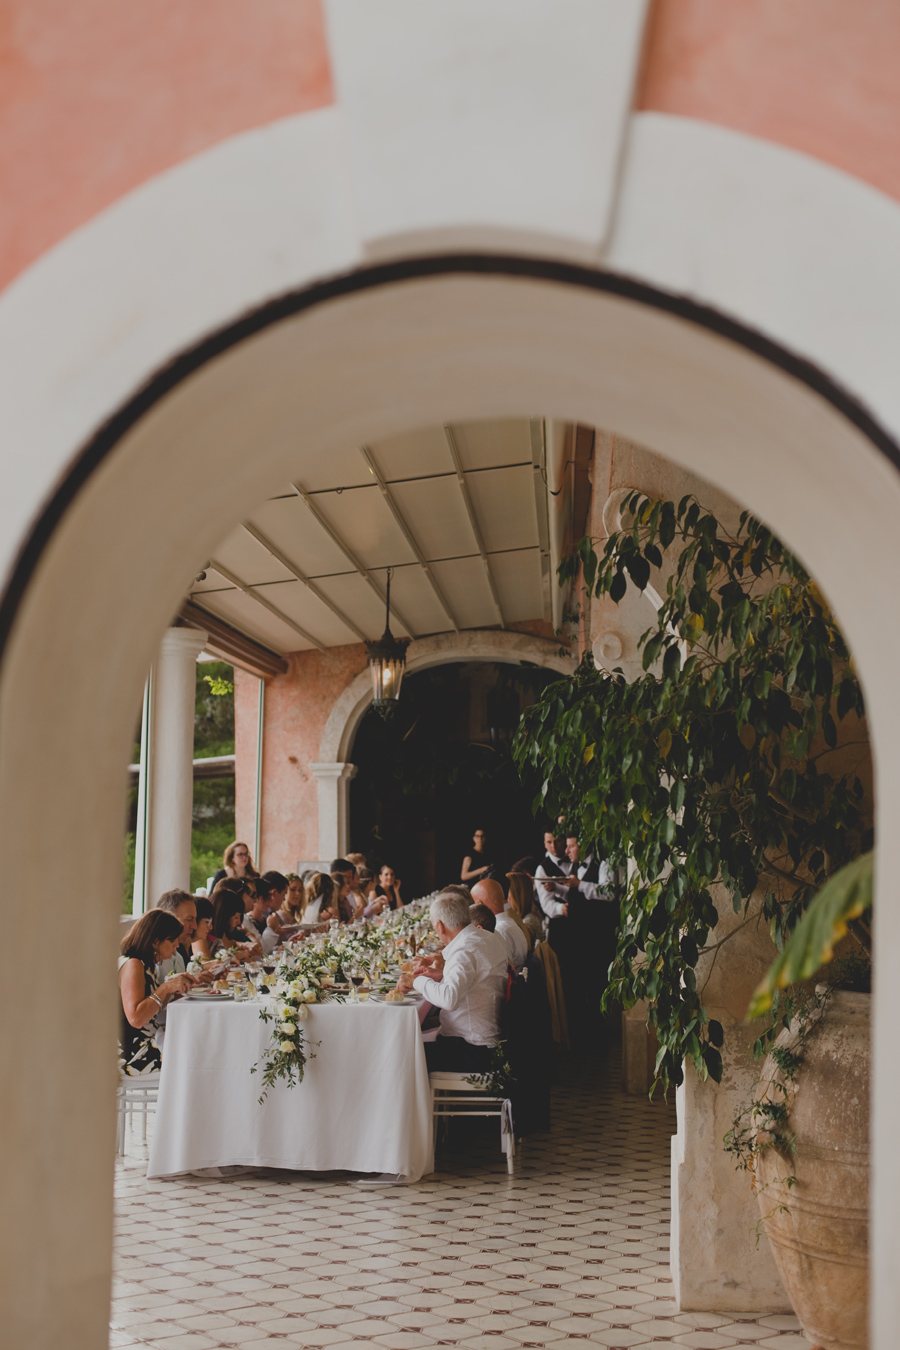 positano-wedding-210